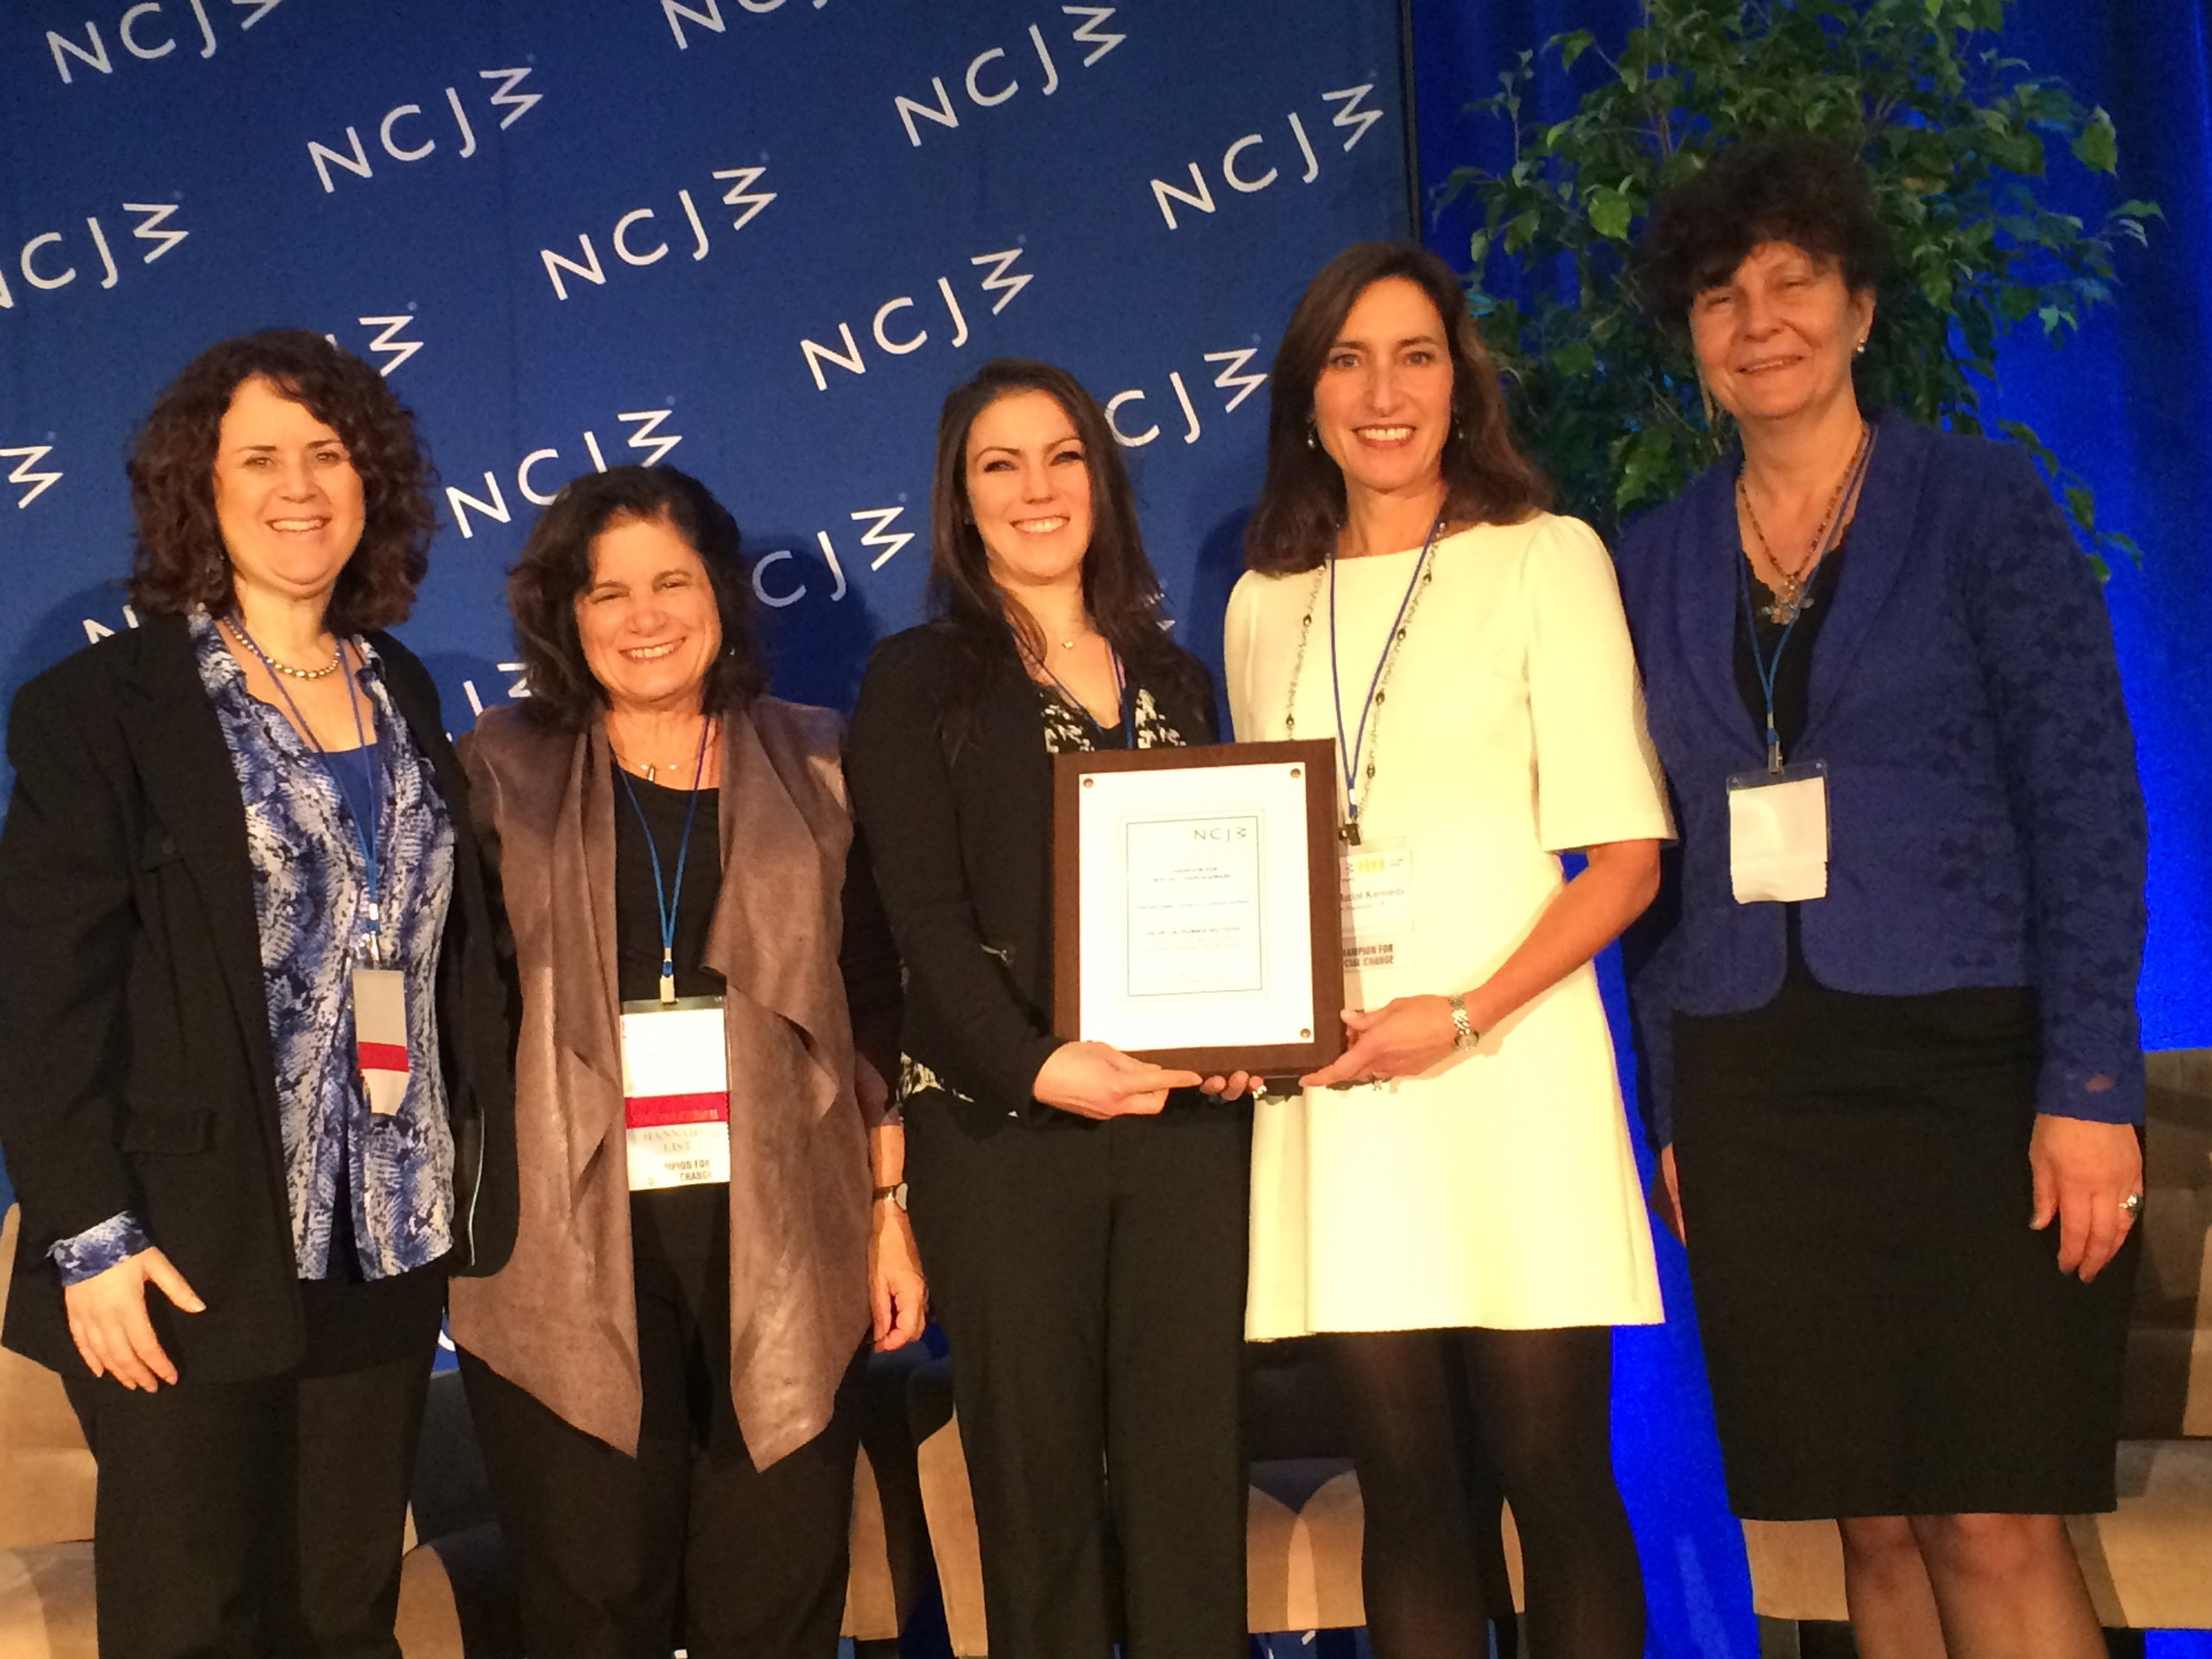 NCJW SF 2016 Washington Institute Delegation with the  Champion for Social Change Award